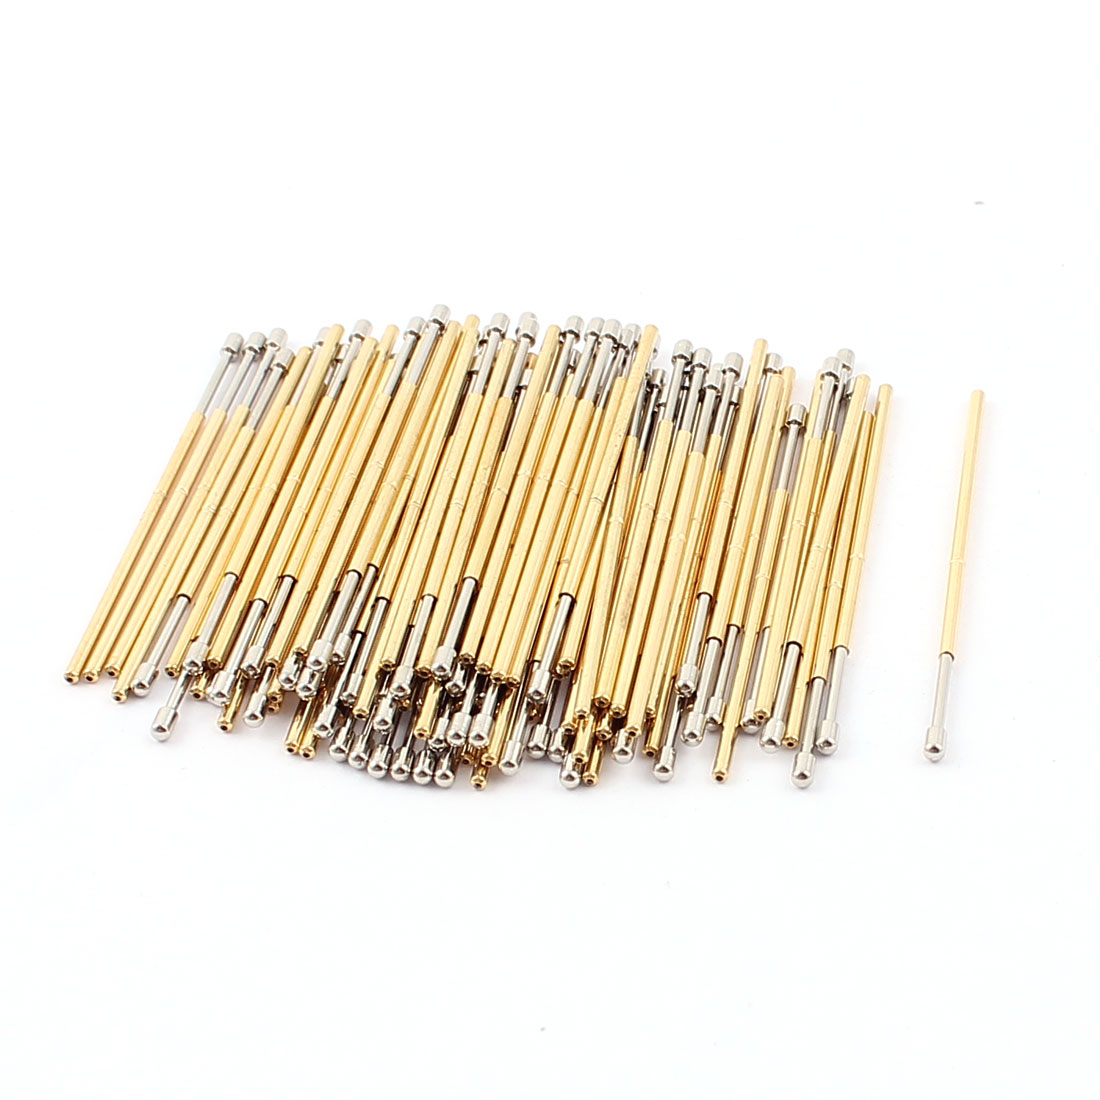 100Pcs P75D 1.3mm Dia Spherical Tip Spring Loaded Test Contact Testing Probes Pin 33mm